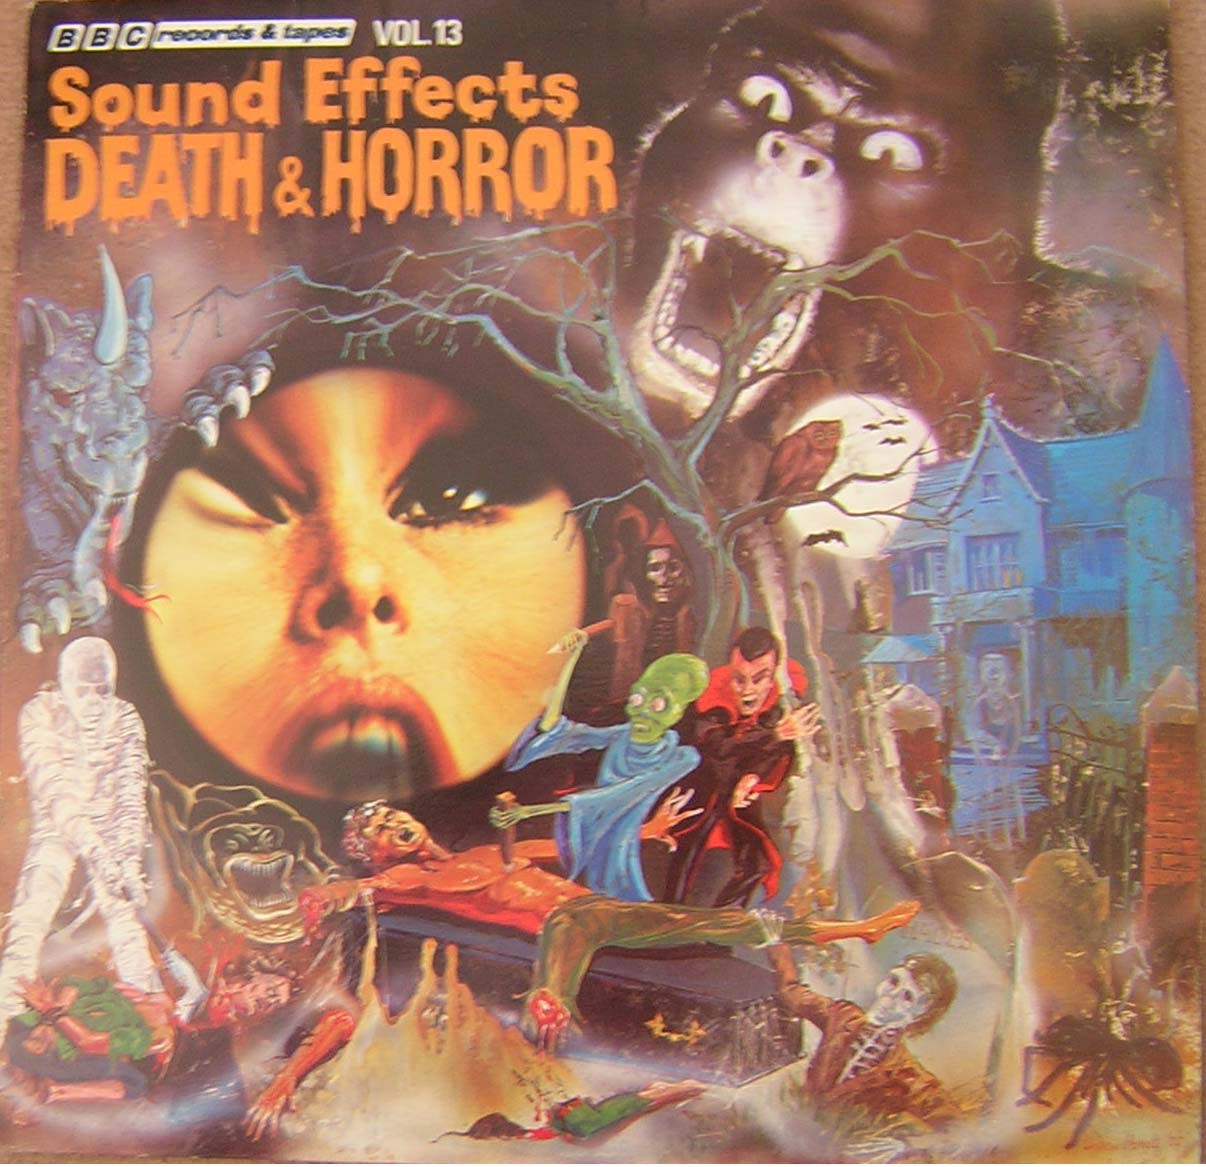 DEATH & HORROR sound effects vol.13